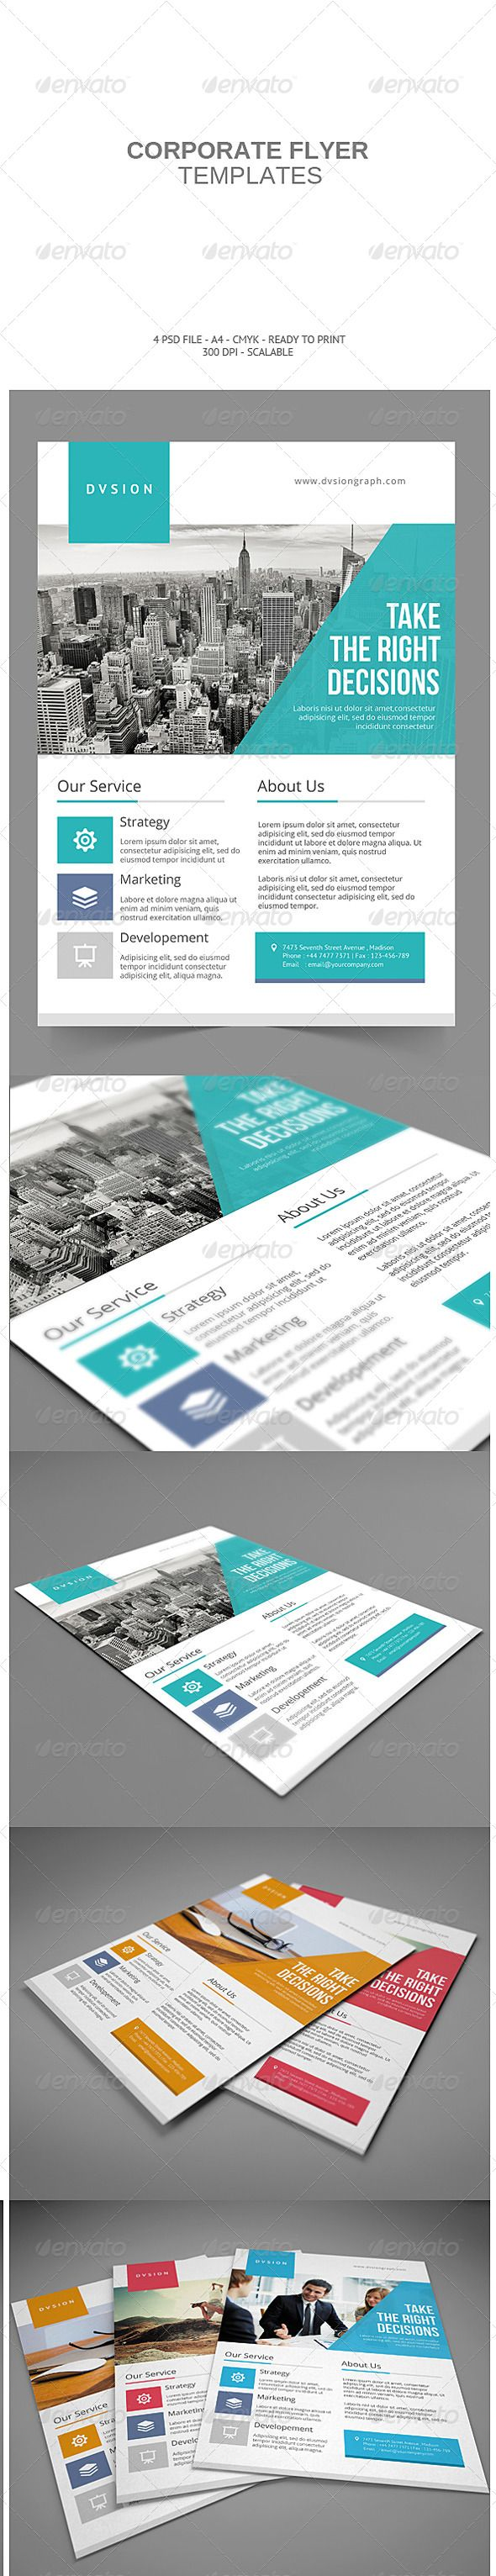 buy brochure templates - corporate flyer design events and clean web design